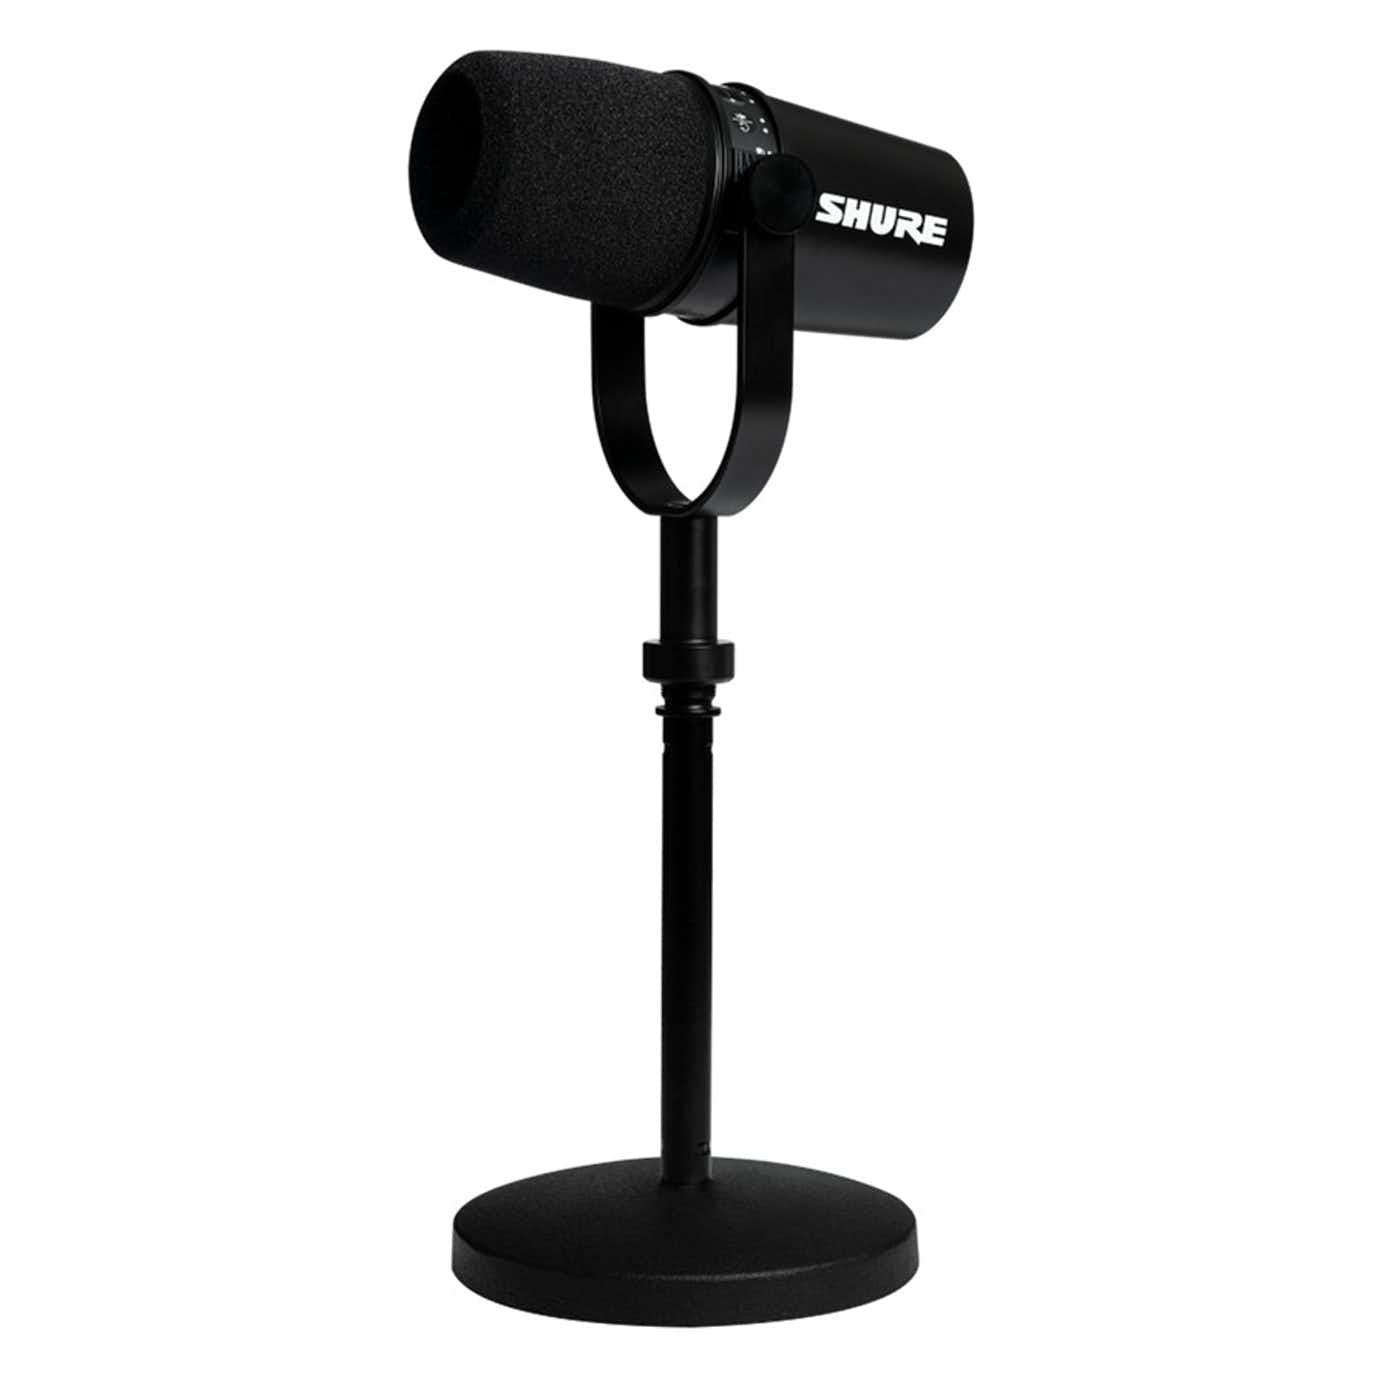 Shure MV7 Podcast Mikrofon - sort